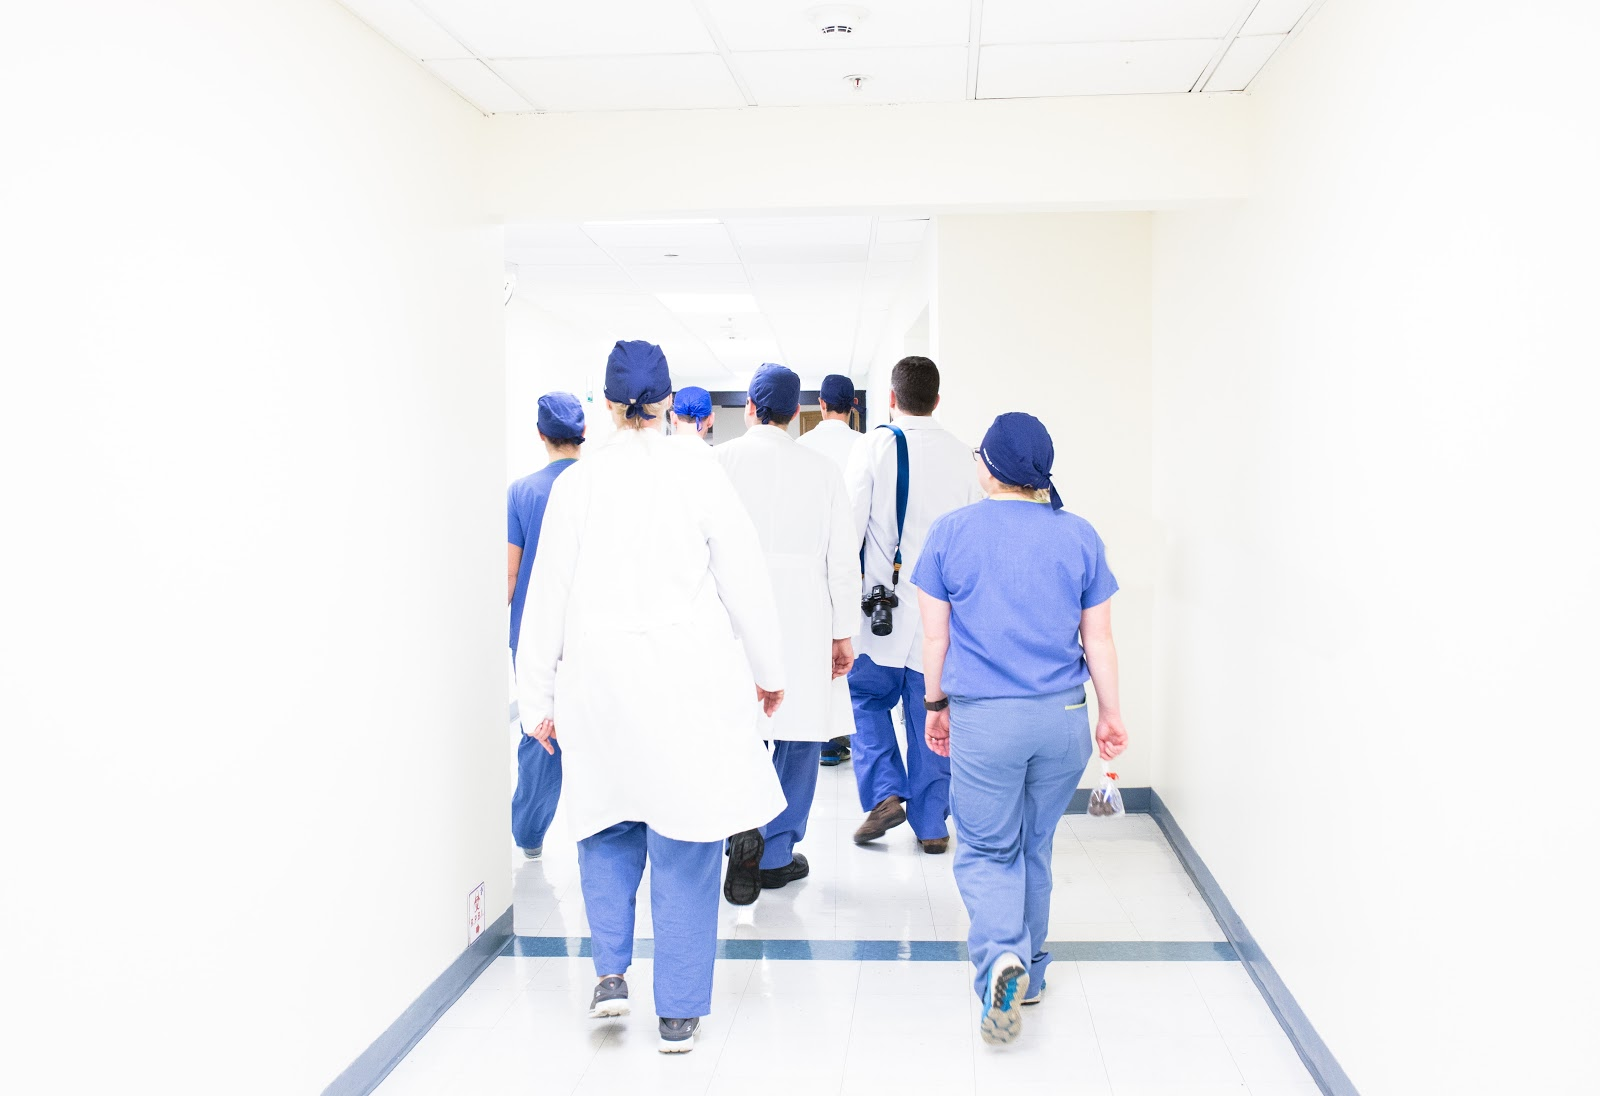 A picture of some doctors/nurses walking down a white corridor.